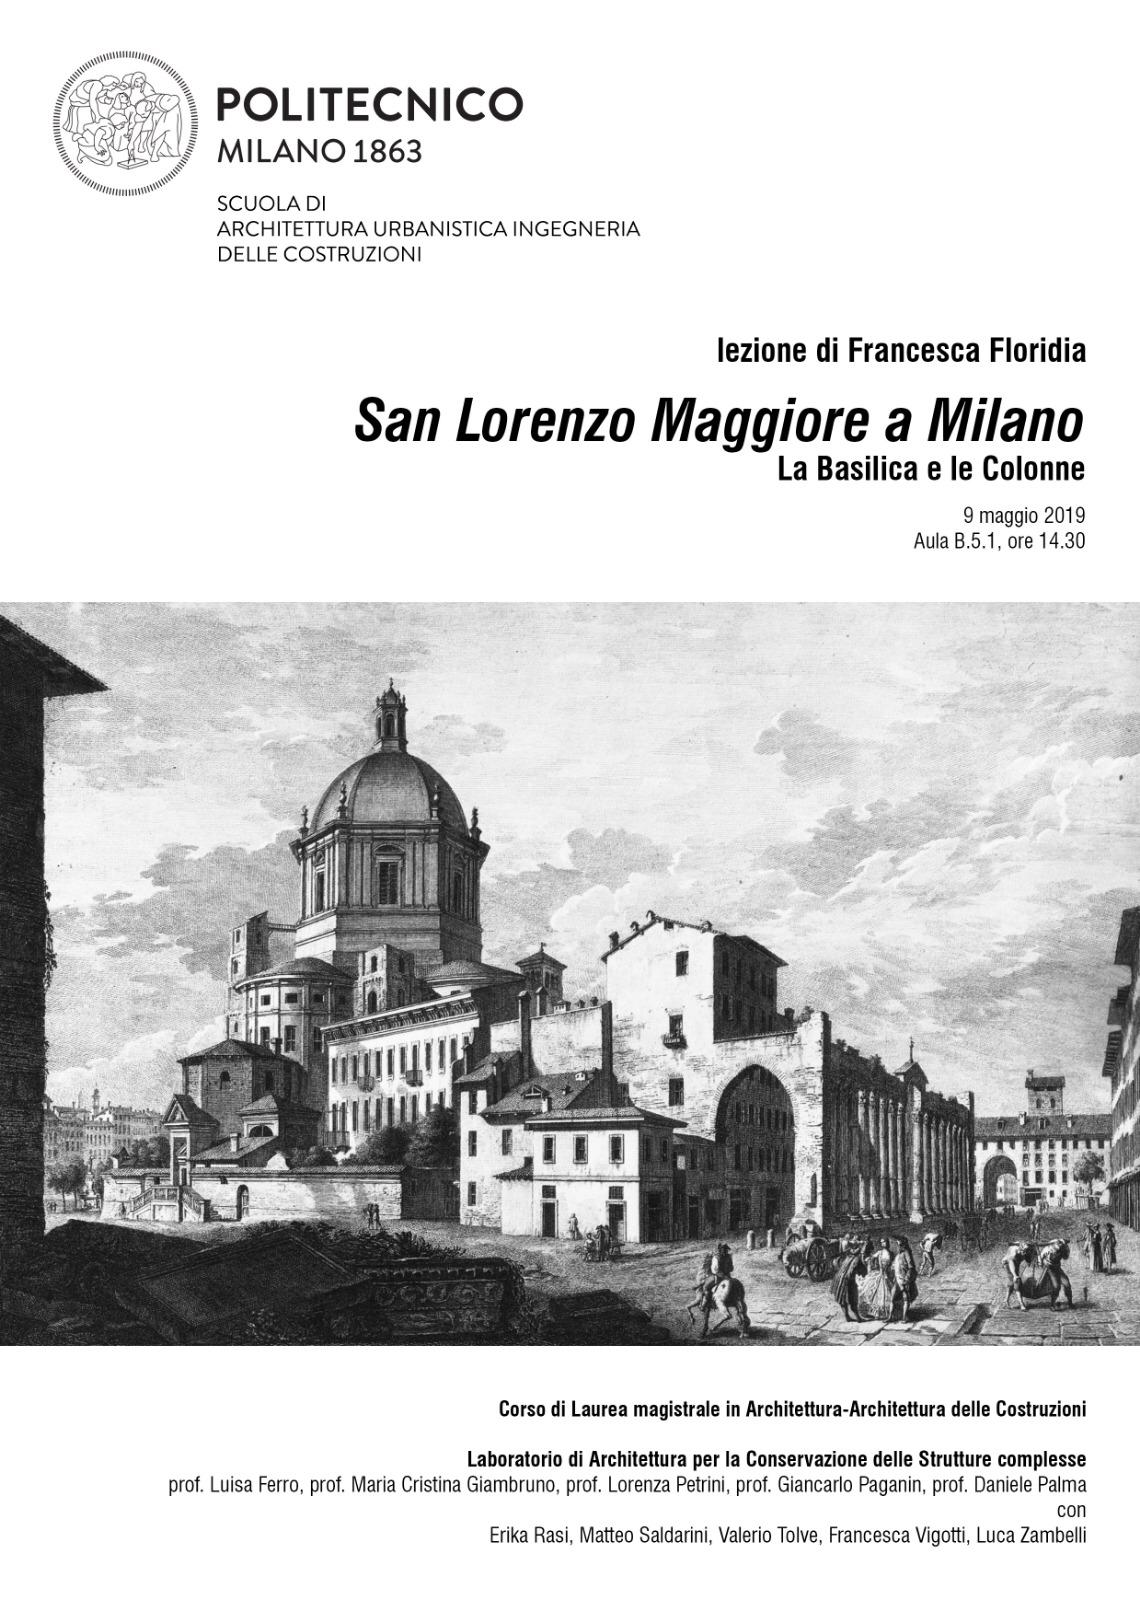 Lecture on San Lorenzo